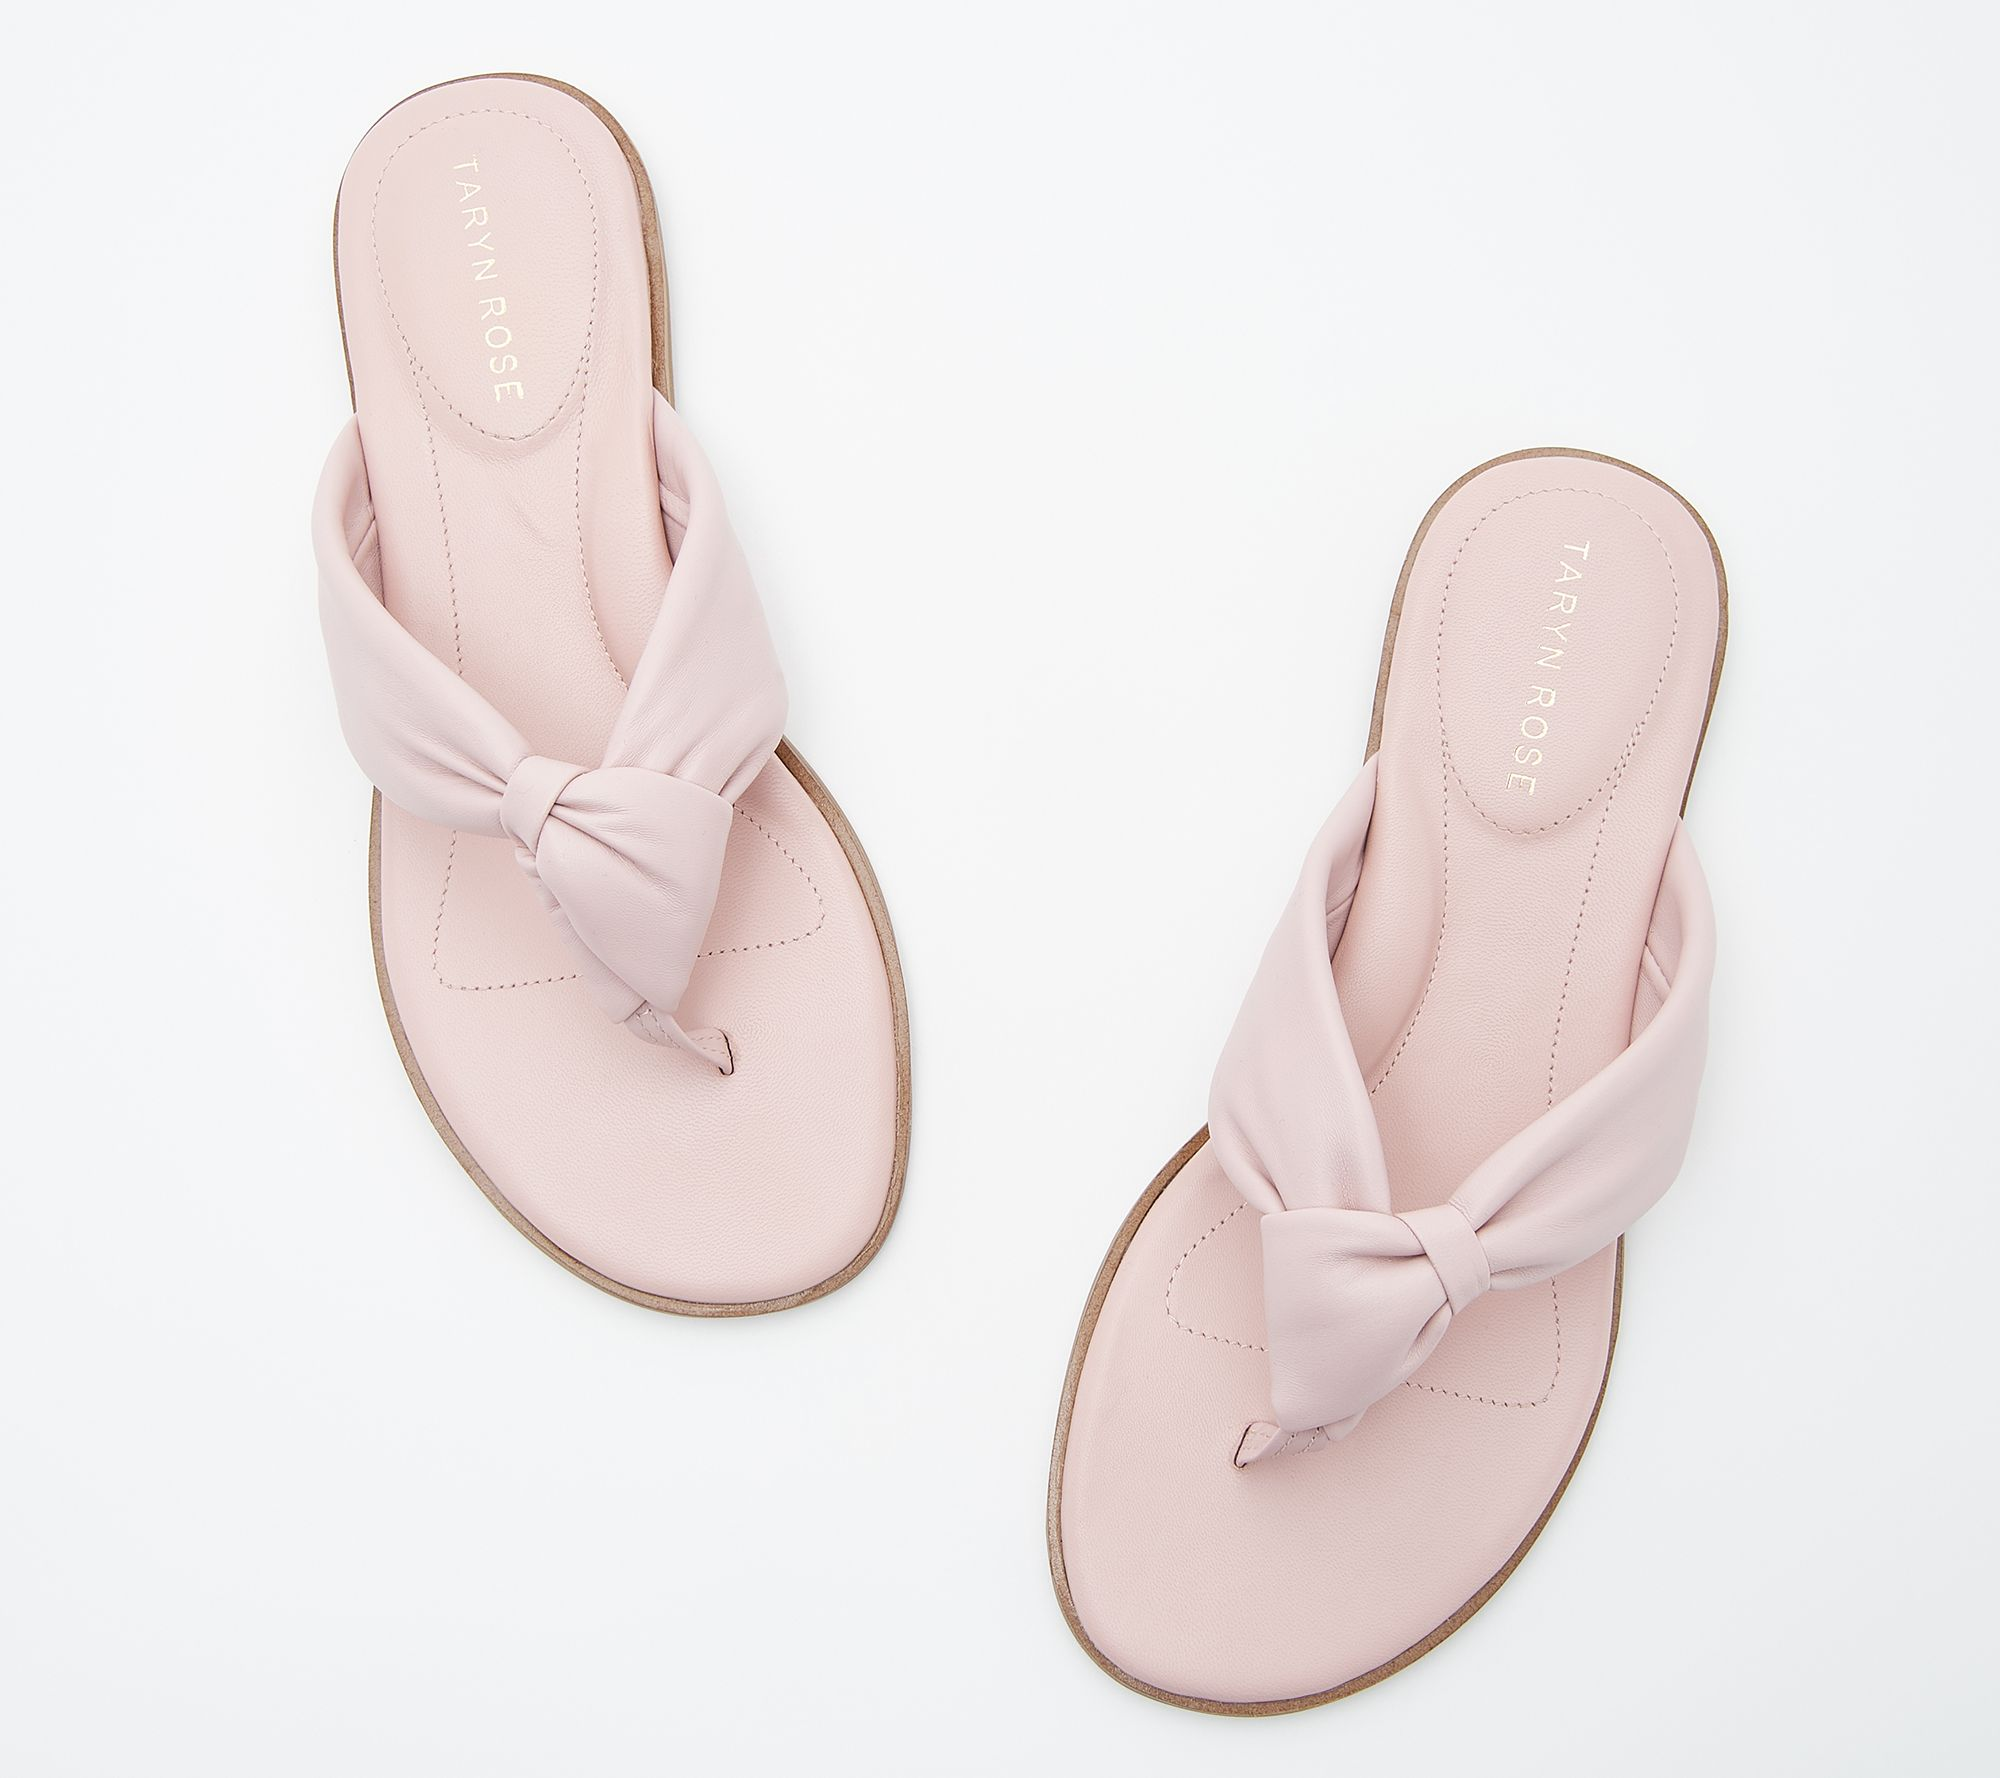 dabcee04342 Taryn Rose Leather Knotted Thong Sandals - Karissa - Page 1 — QVC.com